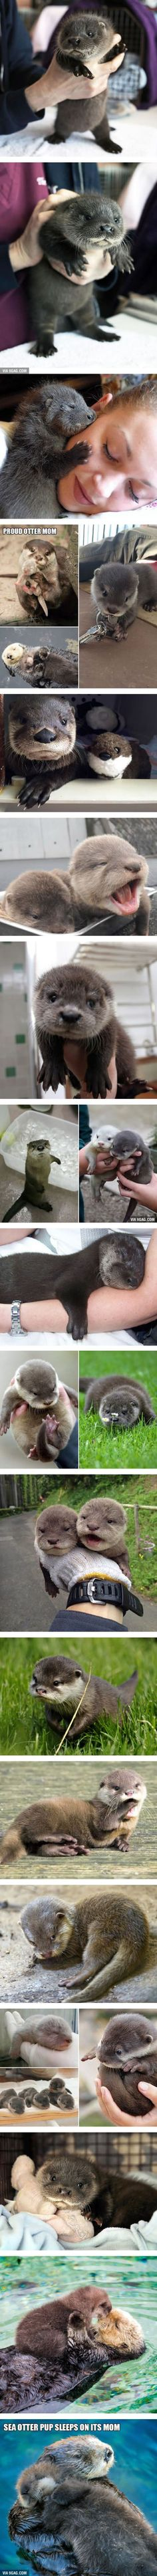 Grosse loutre